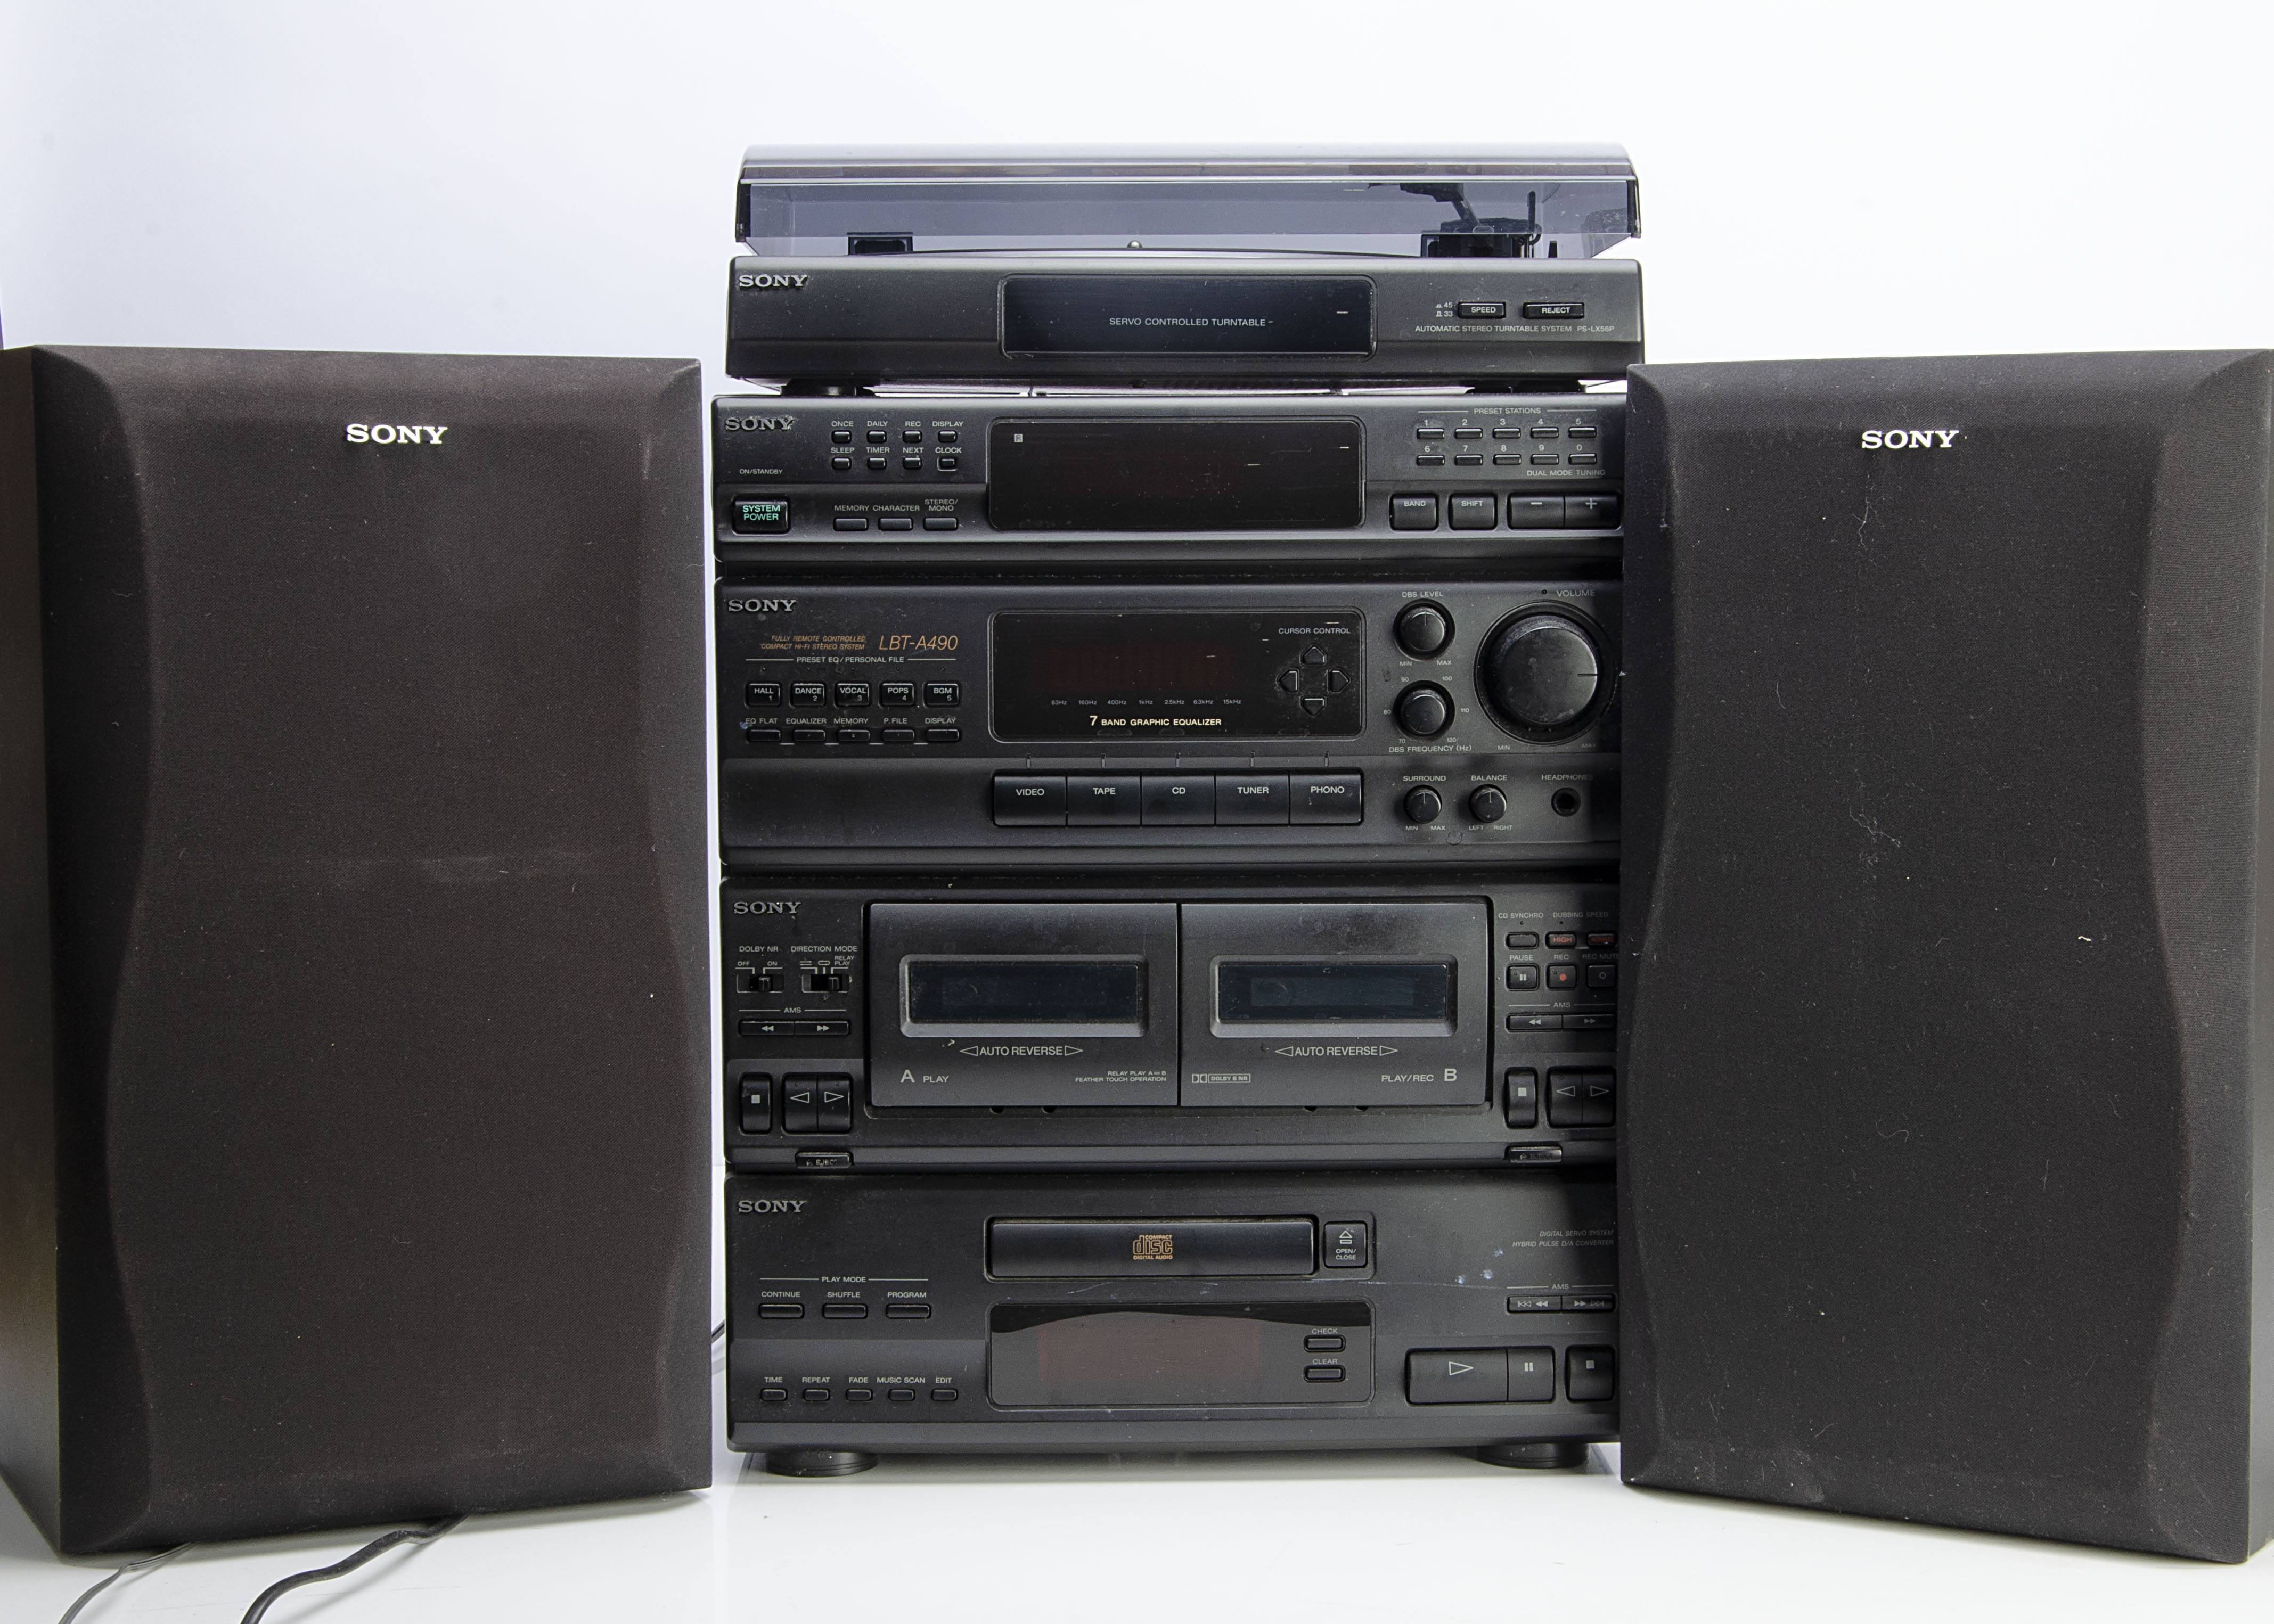 Sony Stereo System, a complete Sony stack system model LBT-A490 (cassette / tuner / CD) with deck